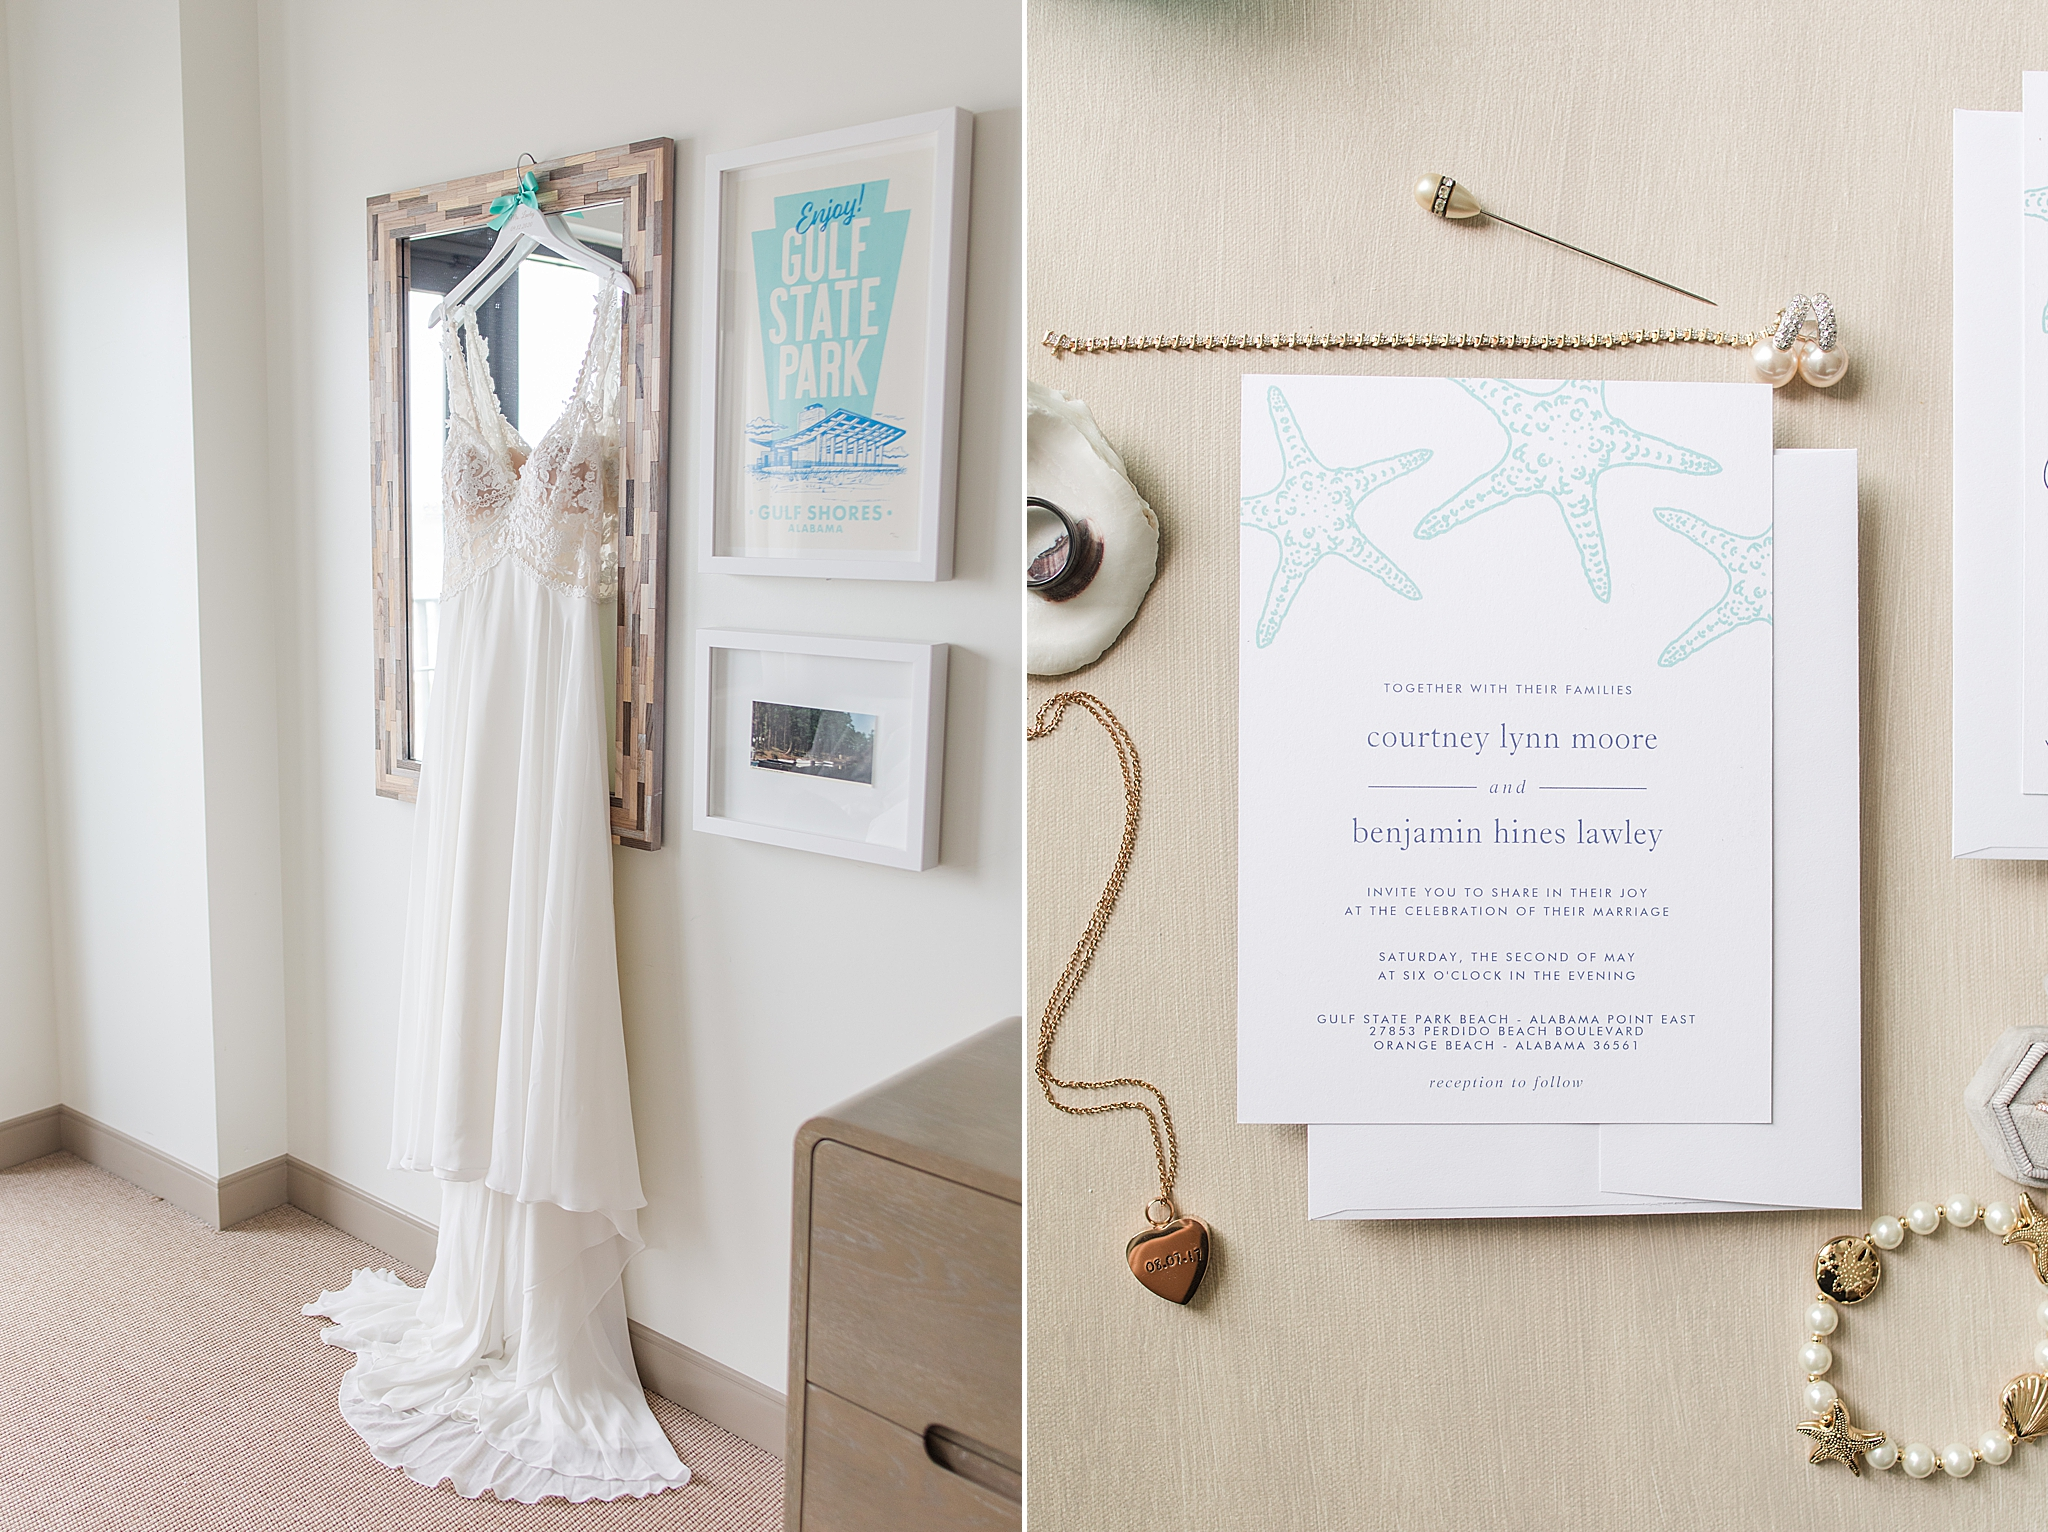 beach wedding details and wedding gown hanging in hotel